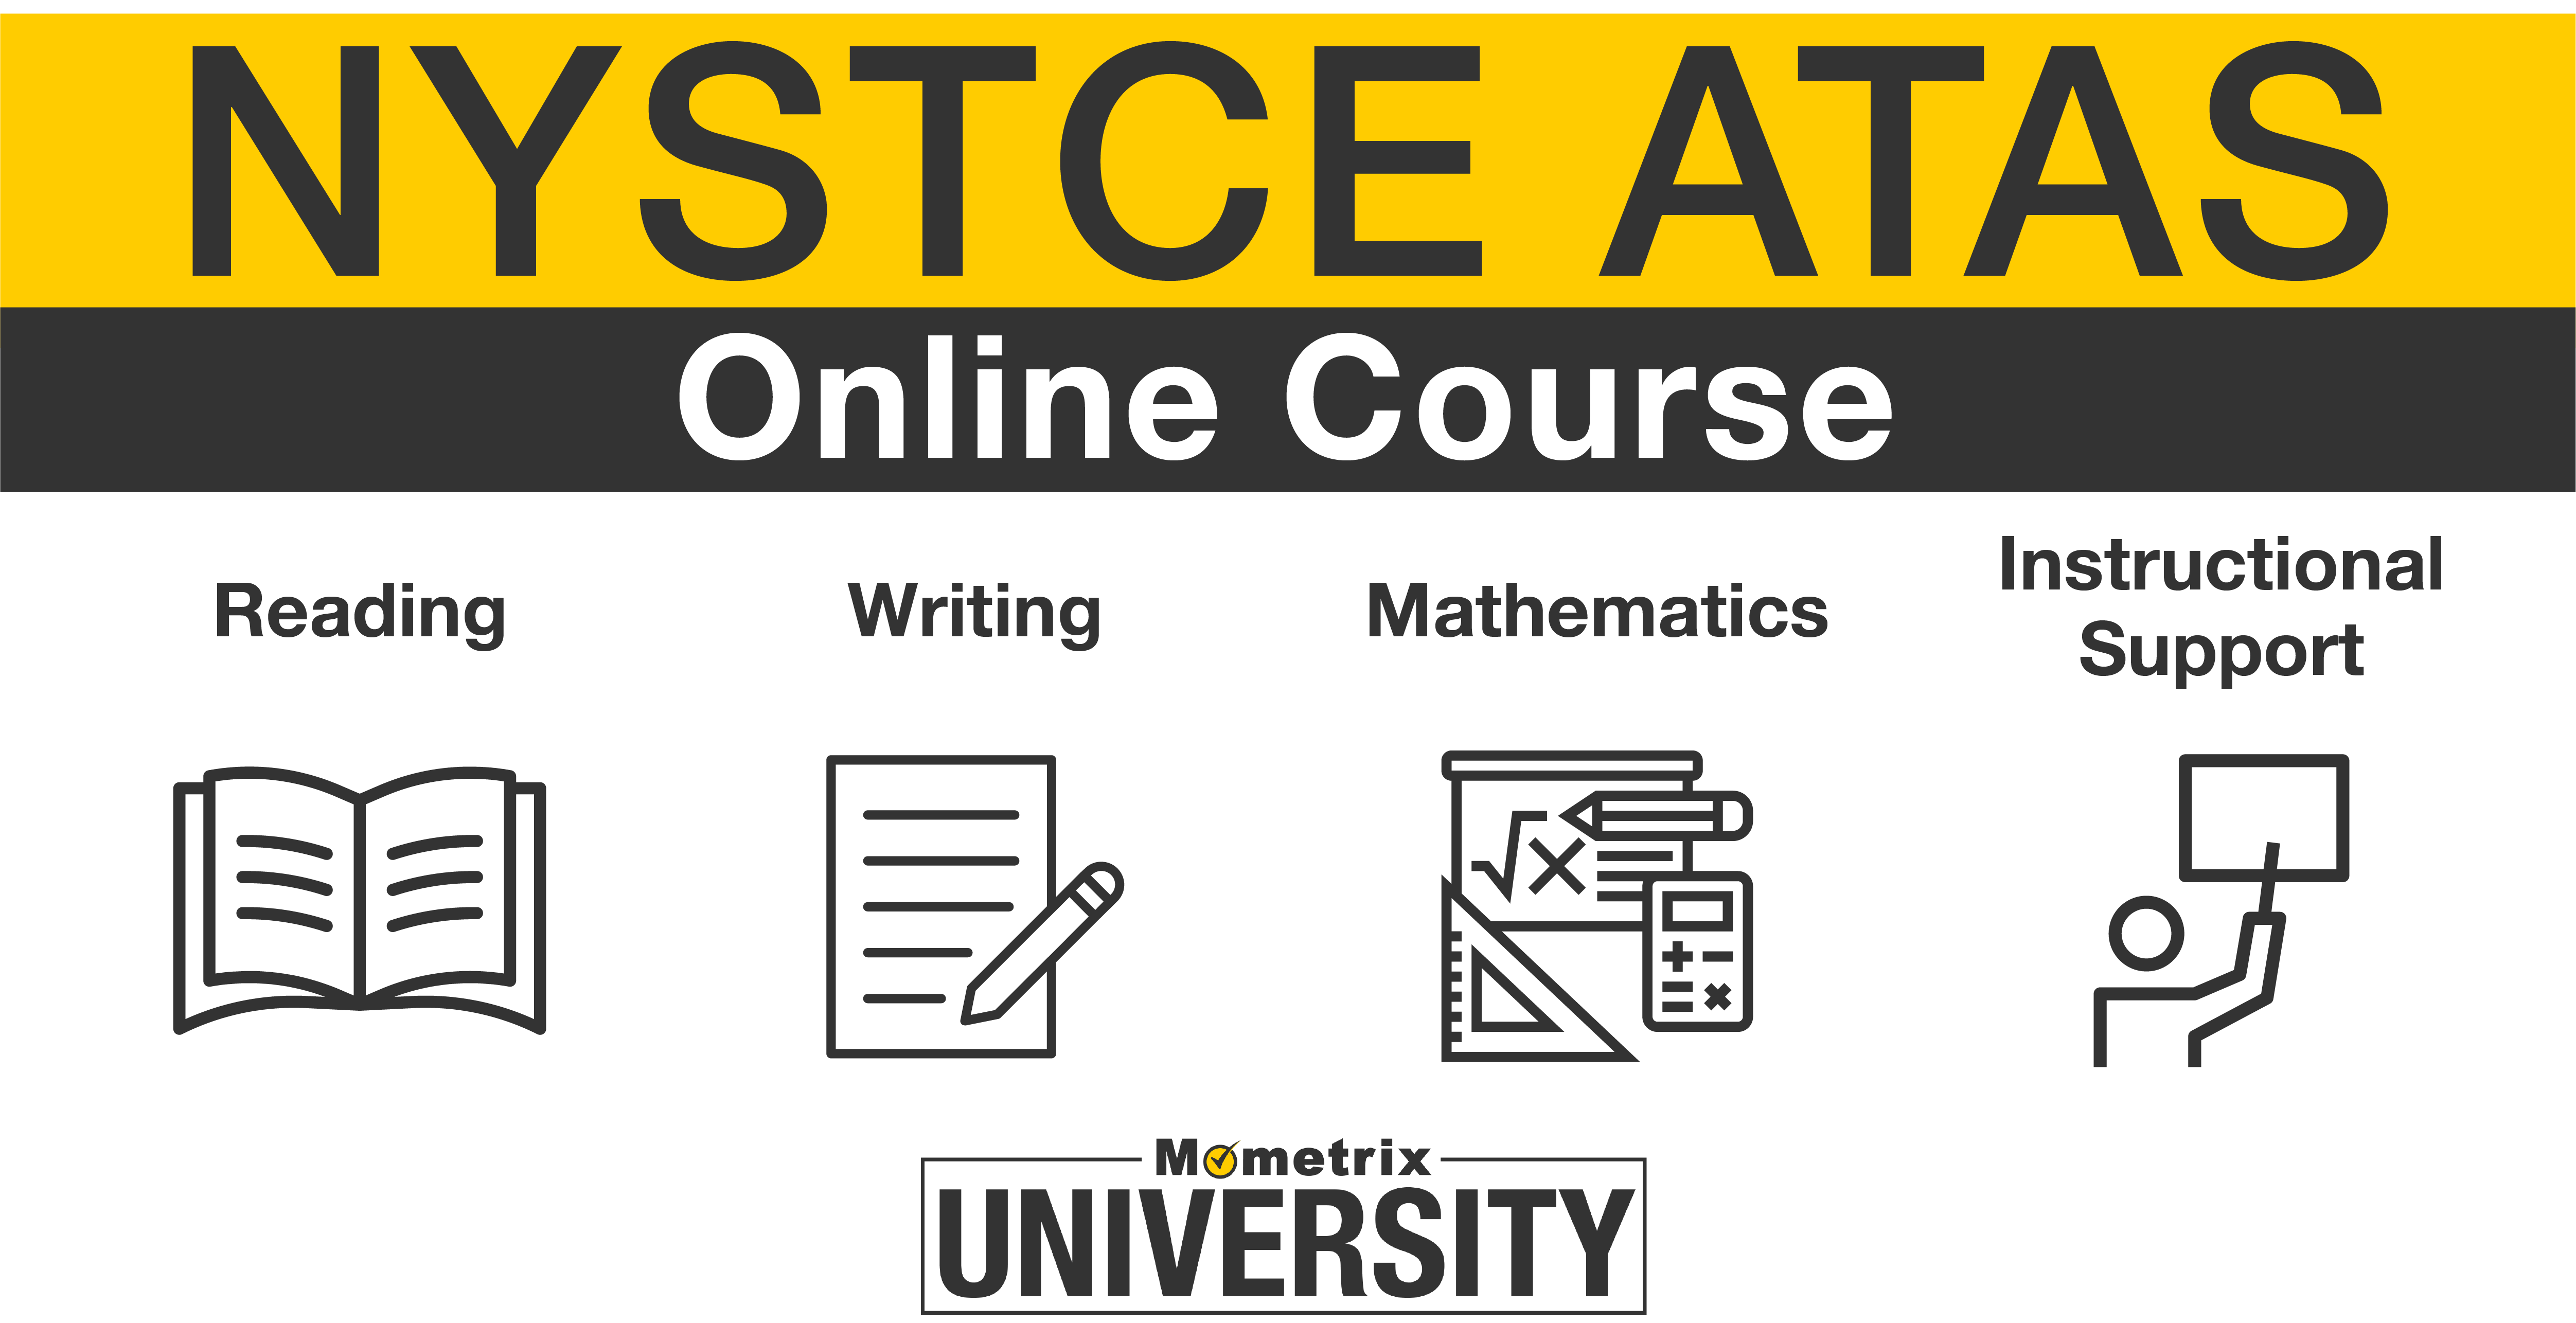 NYSTCE ATAS online course